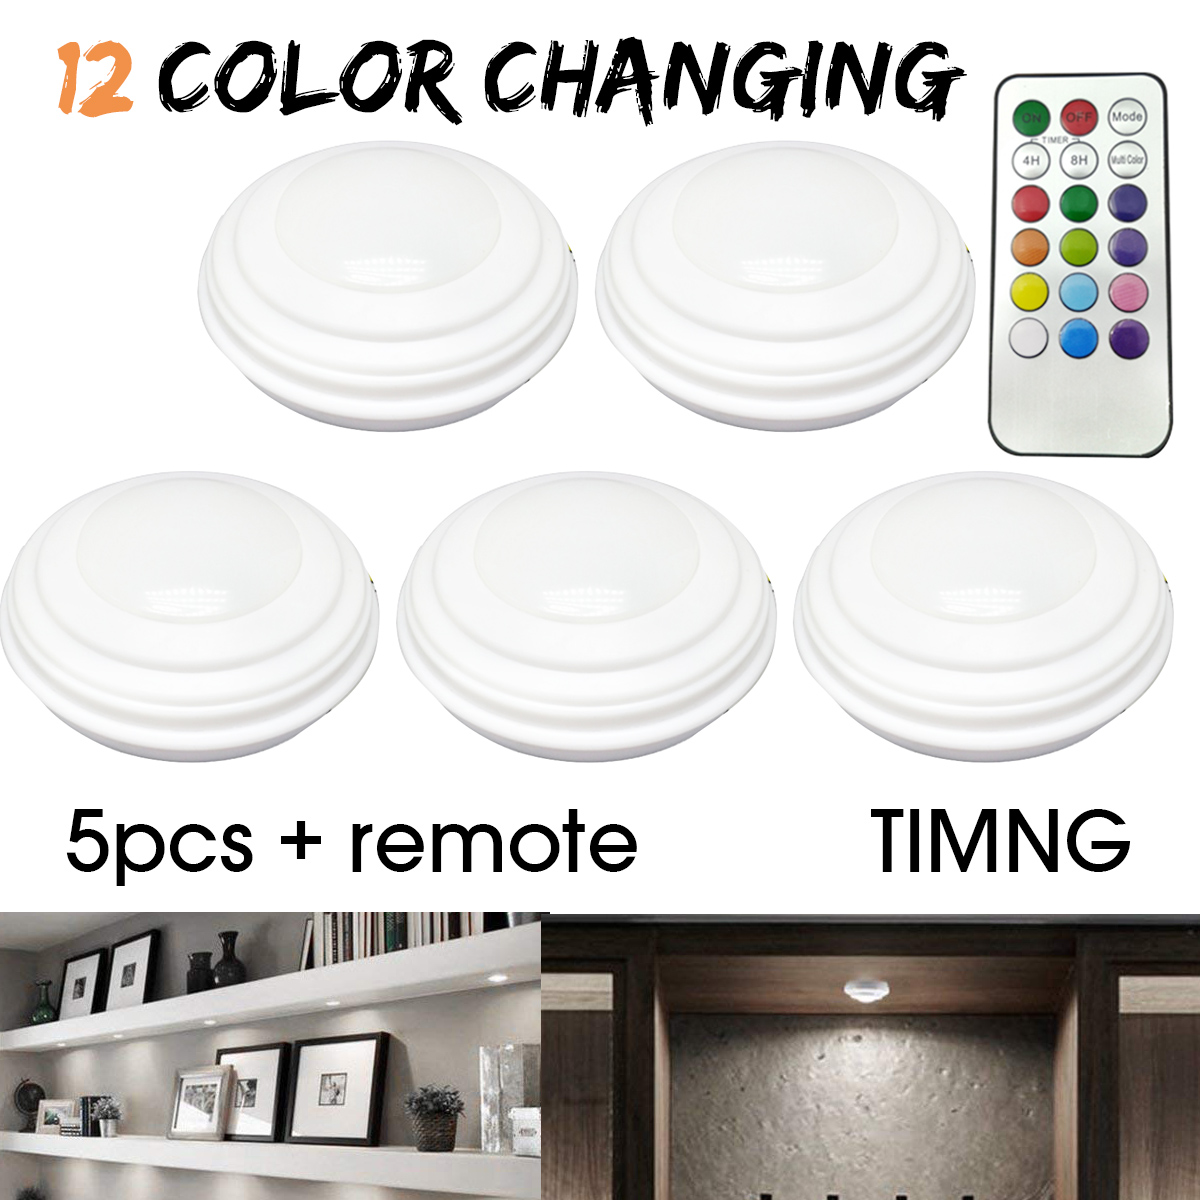 5Pcs LED Wireless Remote Control Night Light 12 Colors Wardrobe Lamp Cabinet Light